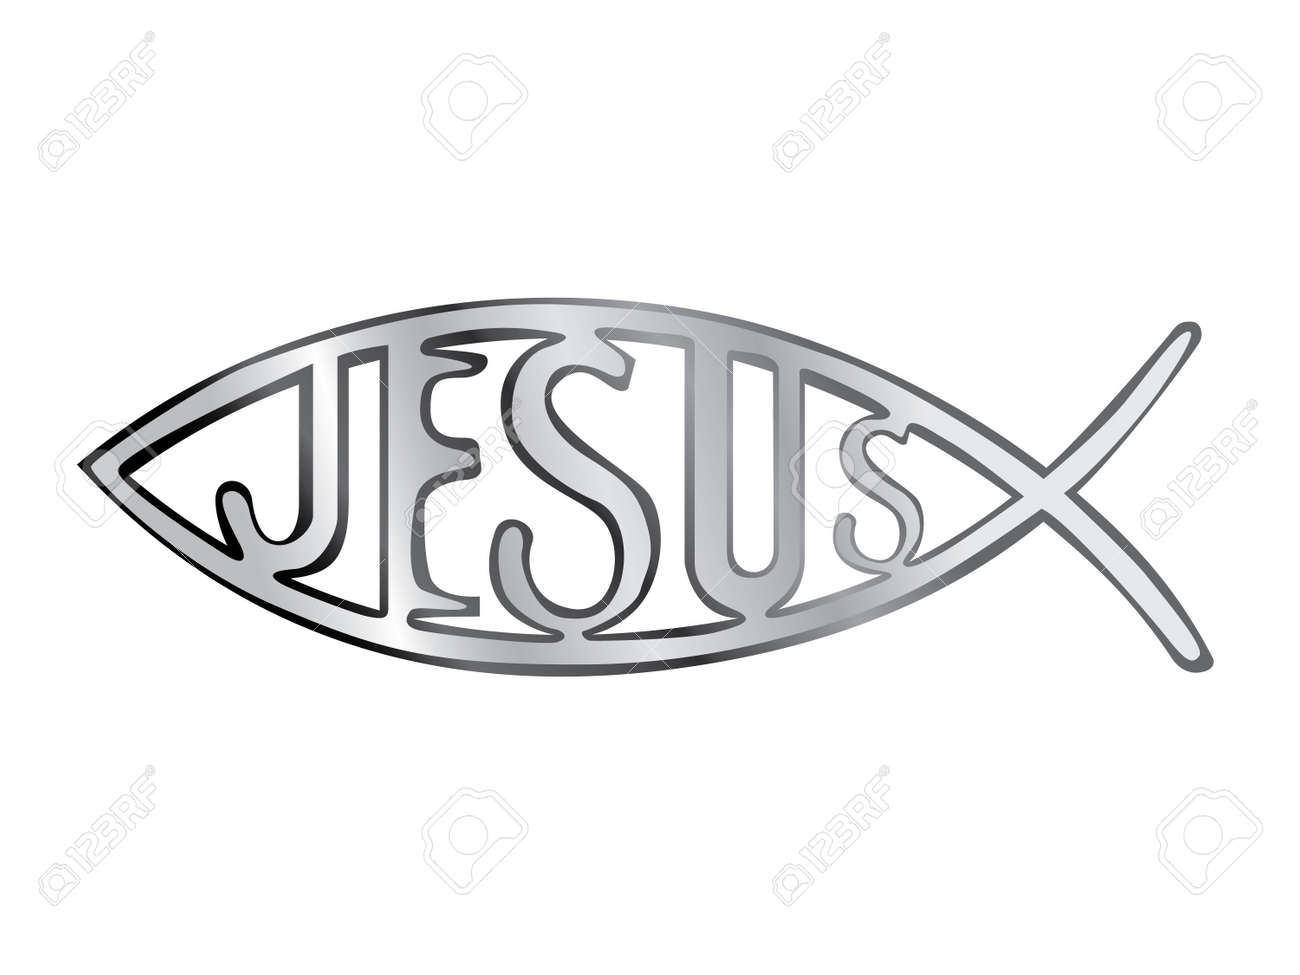 Silver christian fish symbol illustration royalty free cliparts silver christian fish symbol illustration stock vector 11658805 buycottarizona Image collections